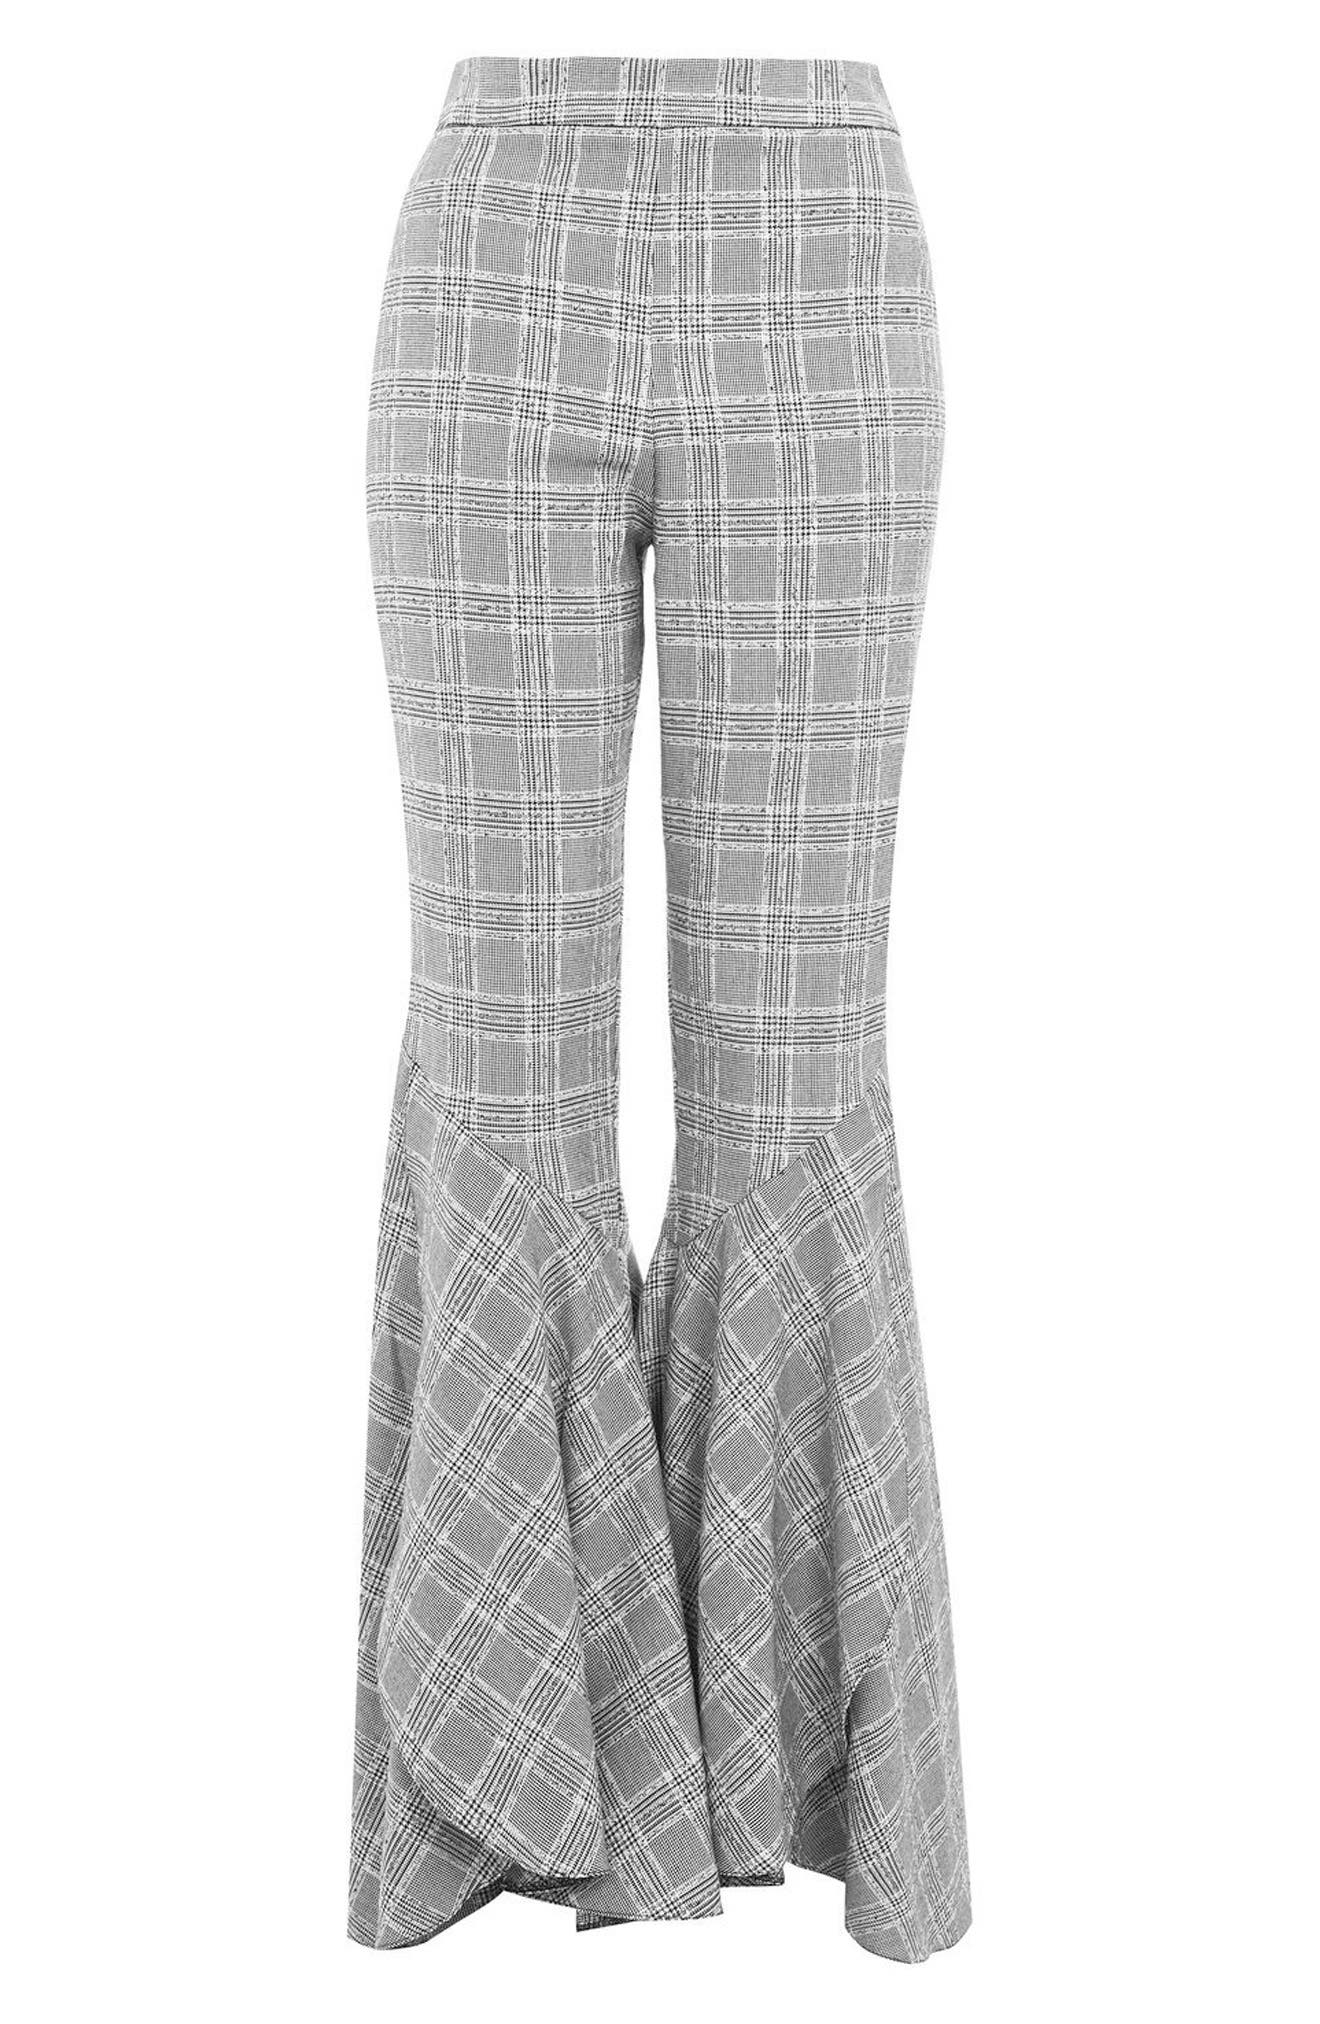 Checked Super Flare Trousers,                             Alternate thumbnail 3, color,                             021